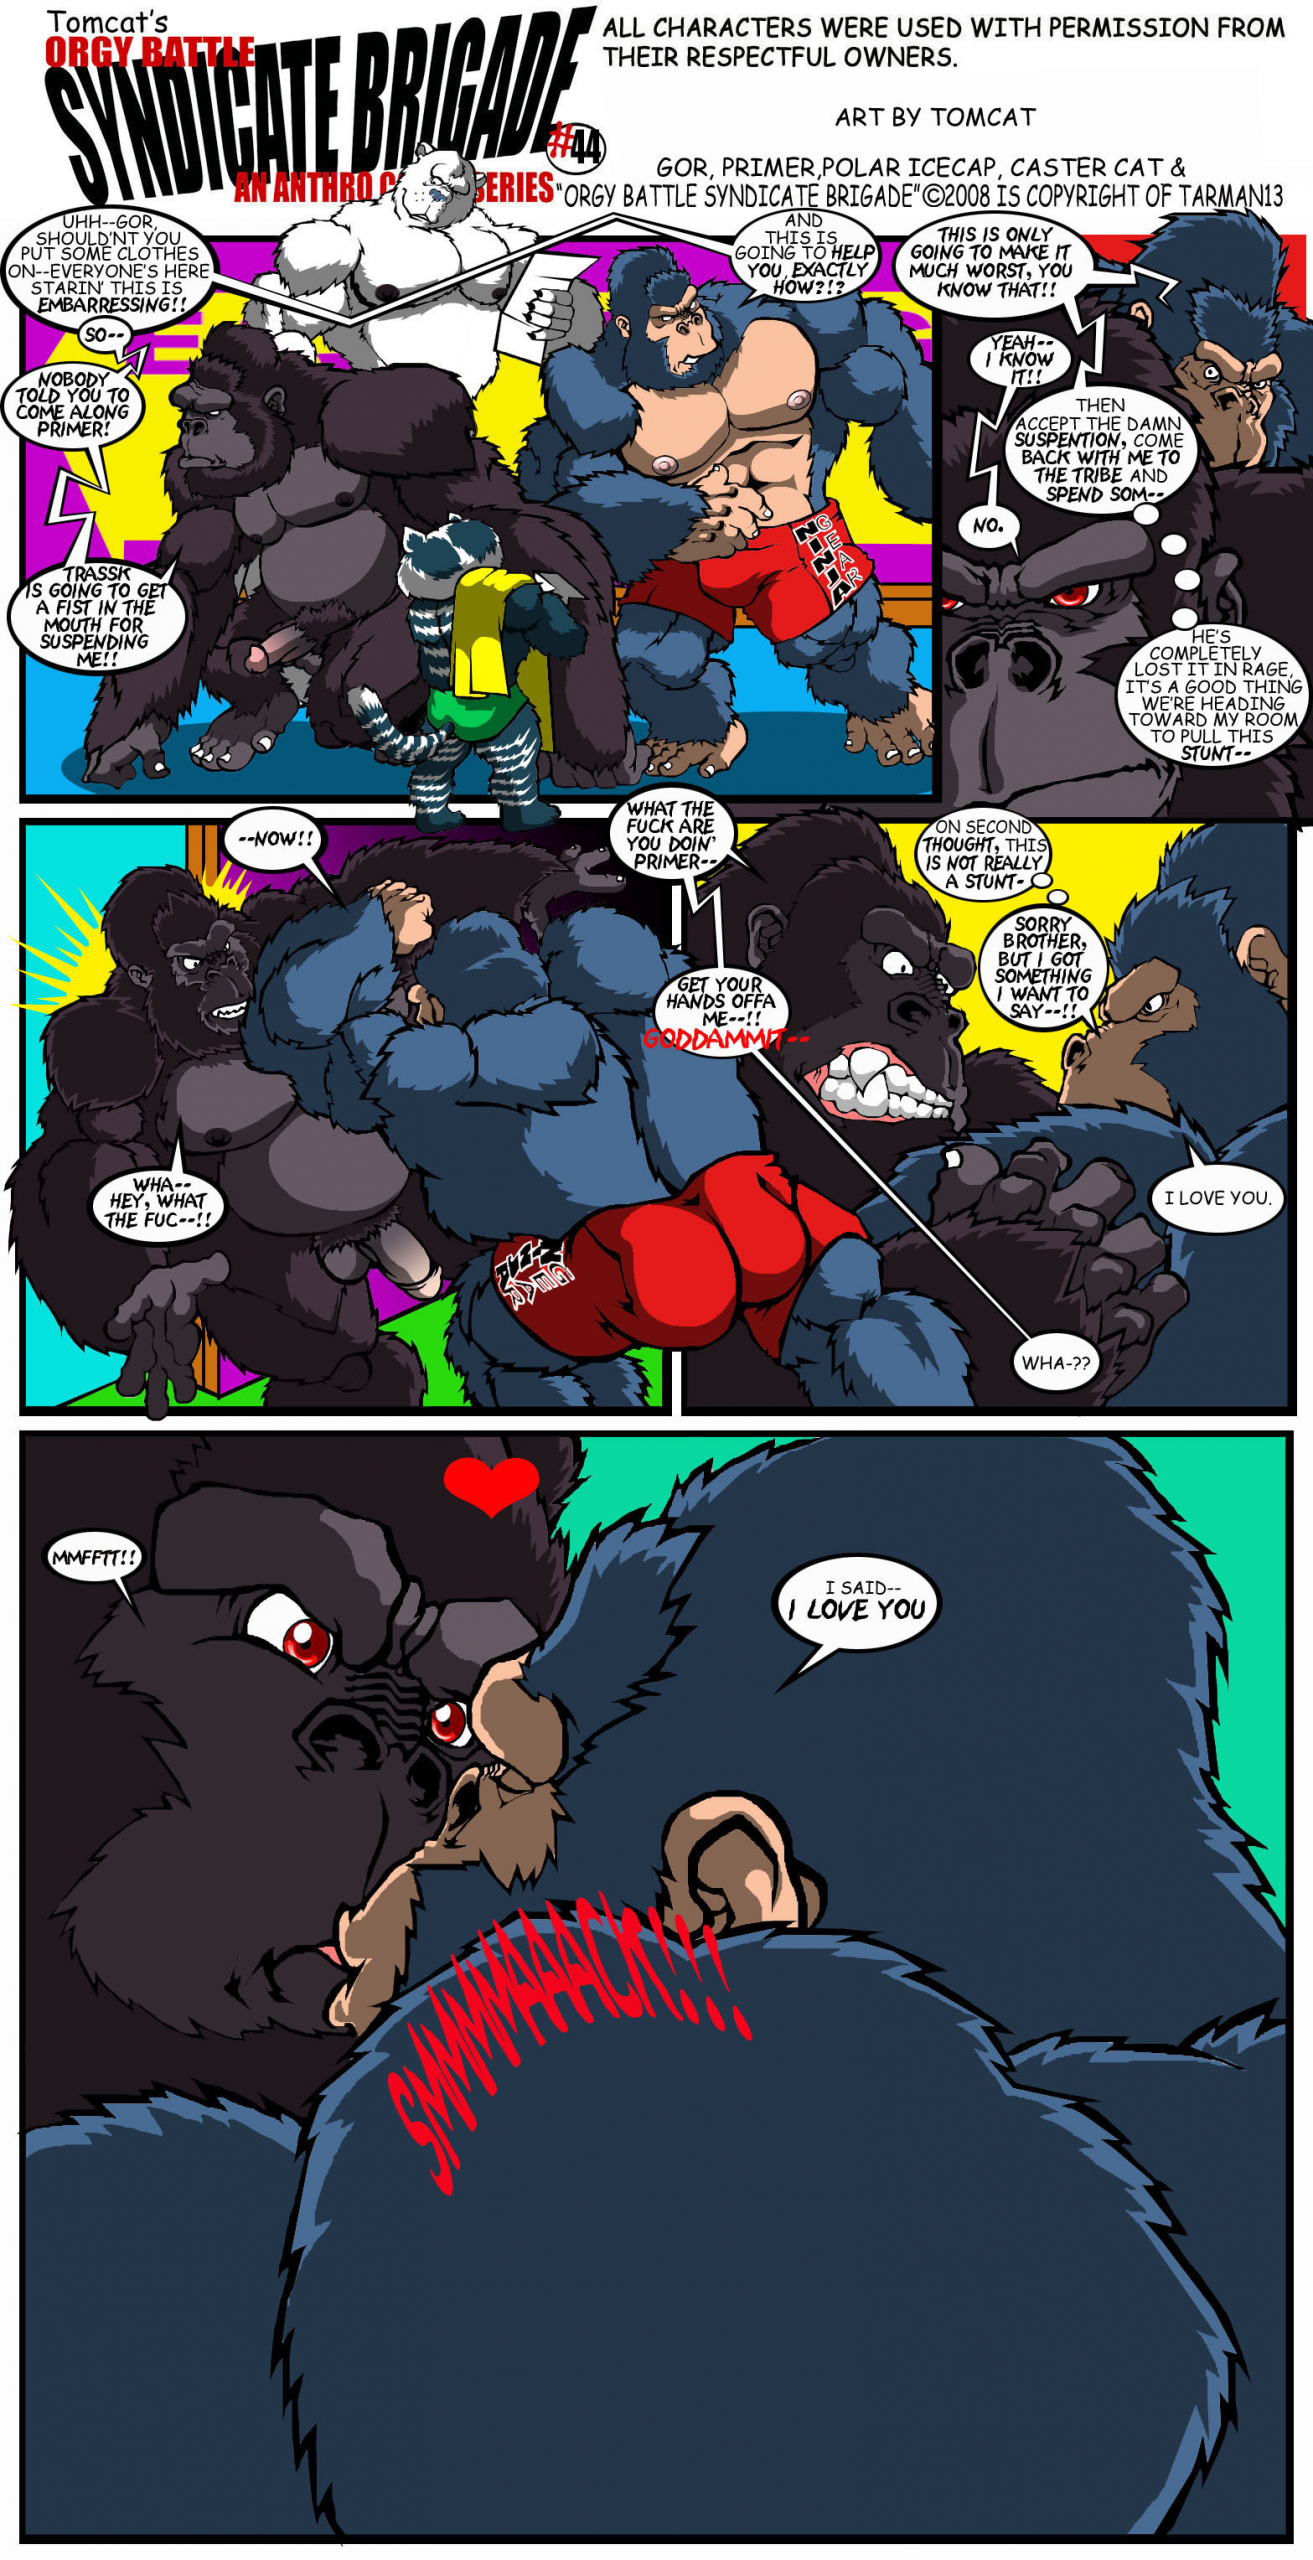 170296_Tomcat_syndicate_comic_page_44.1